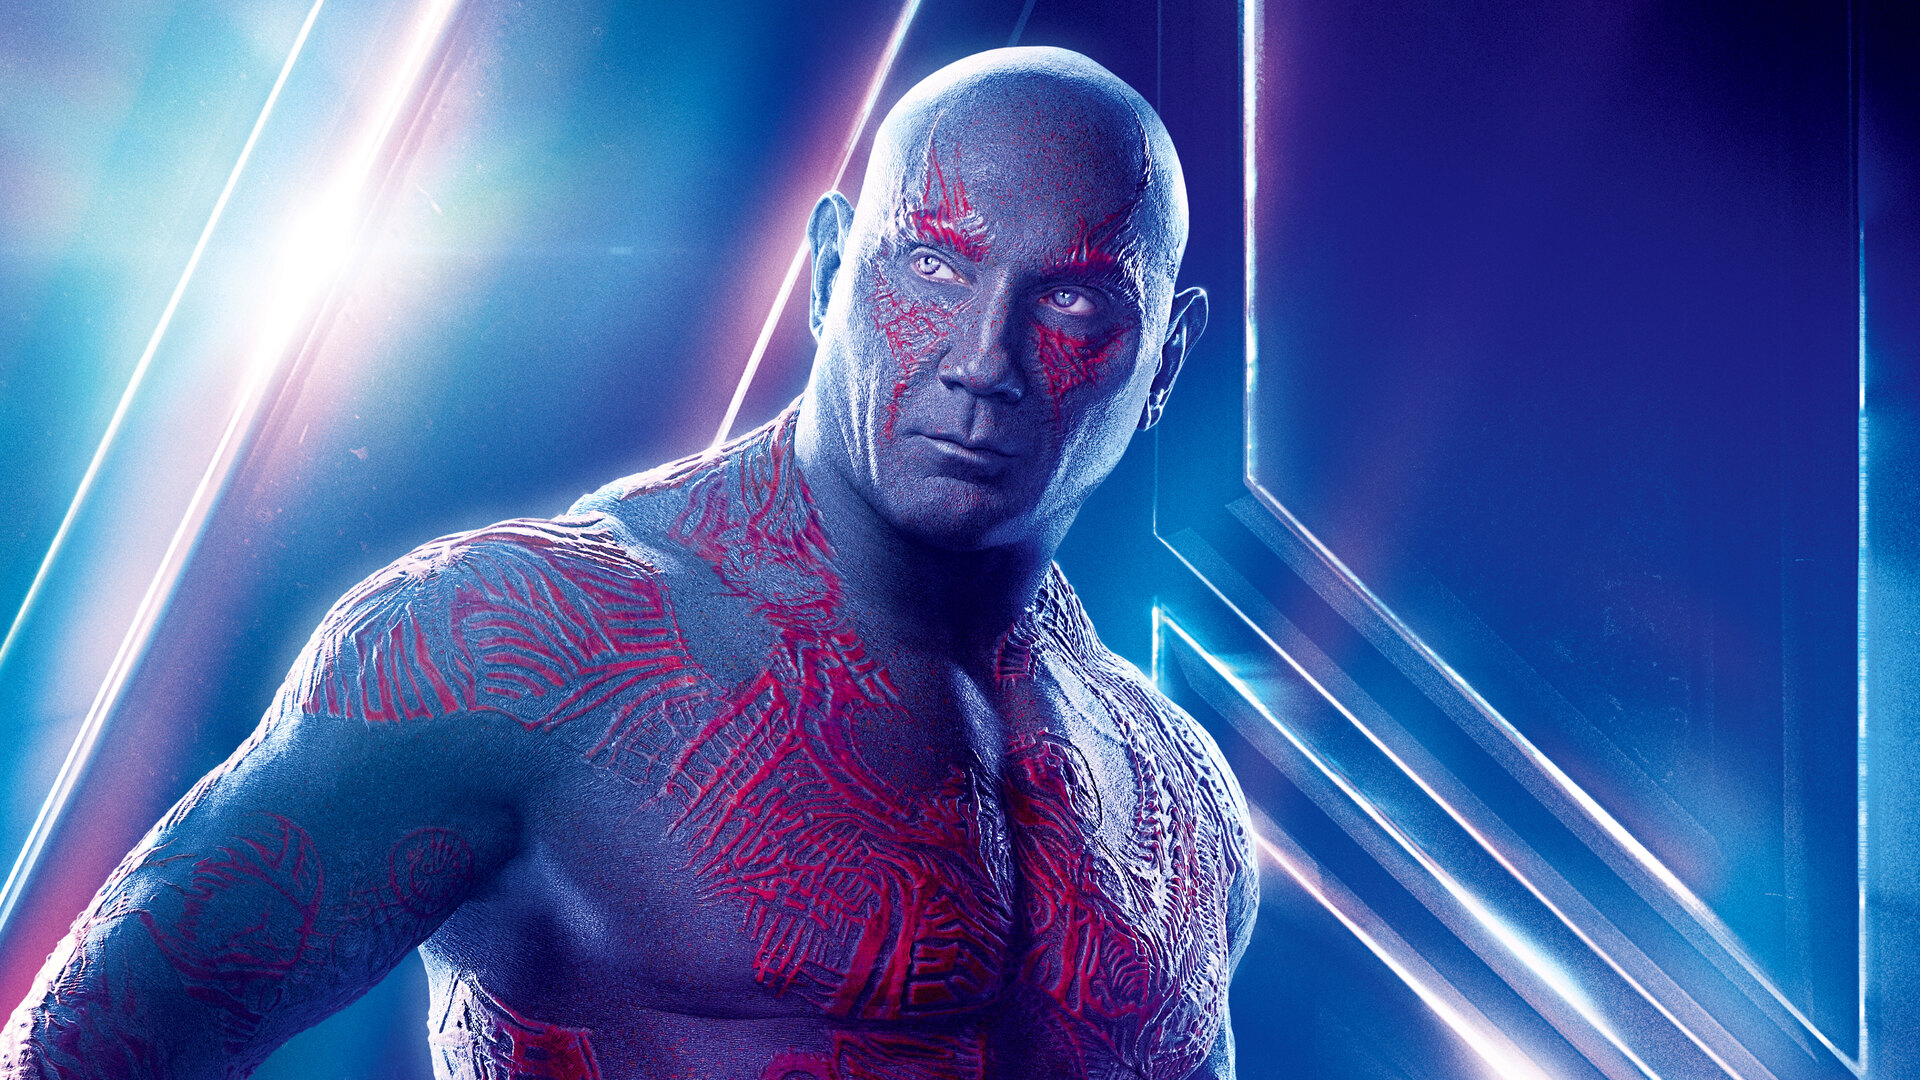 drax-the-destroyer-in-avengers-infinity-war-8k-poster-2w.jpg